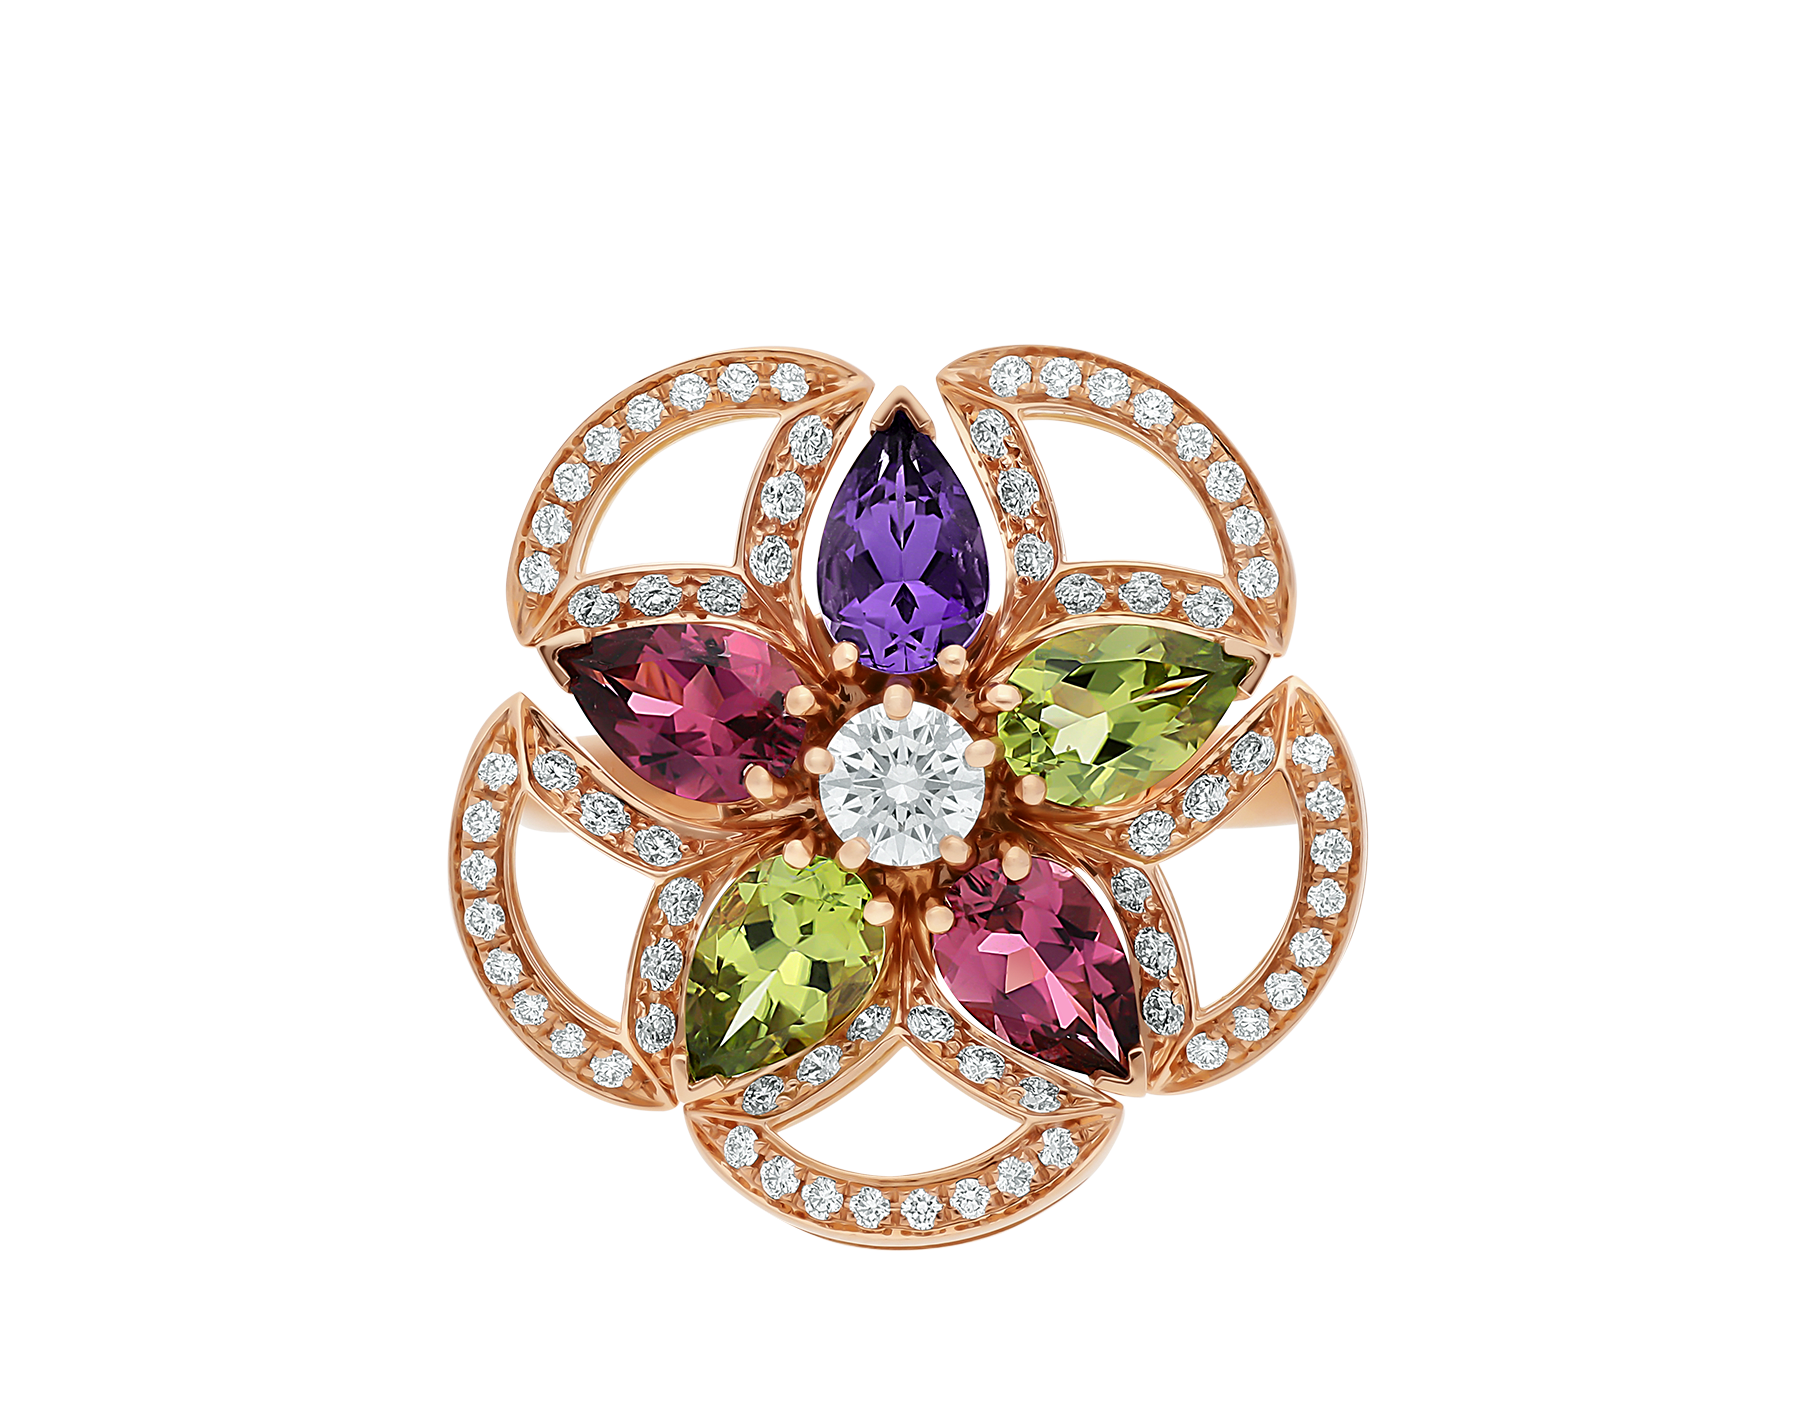 DIVAS' DREAM 18 kt rose gold ring set with coloured gemstones, a brilliant-cut diamond and pavé diamonds AN858421 image 3